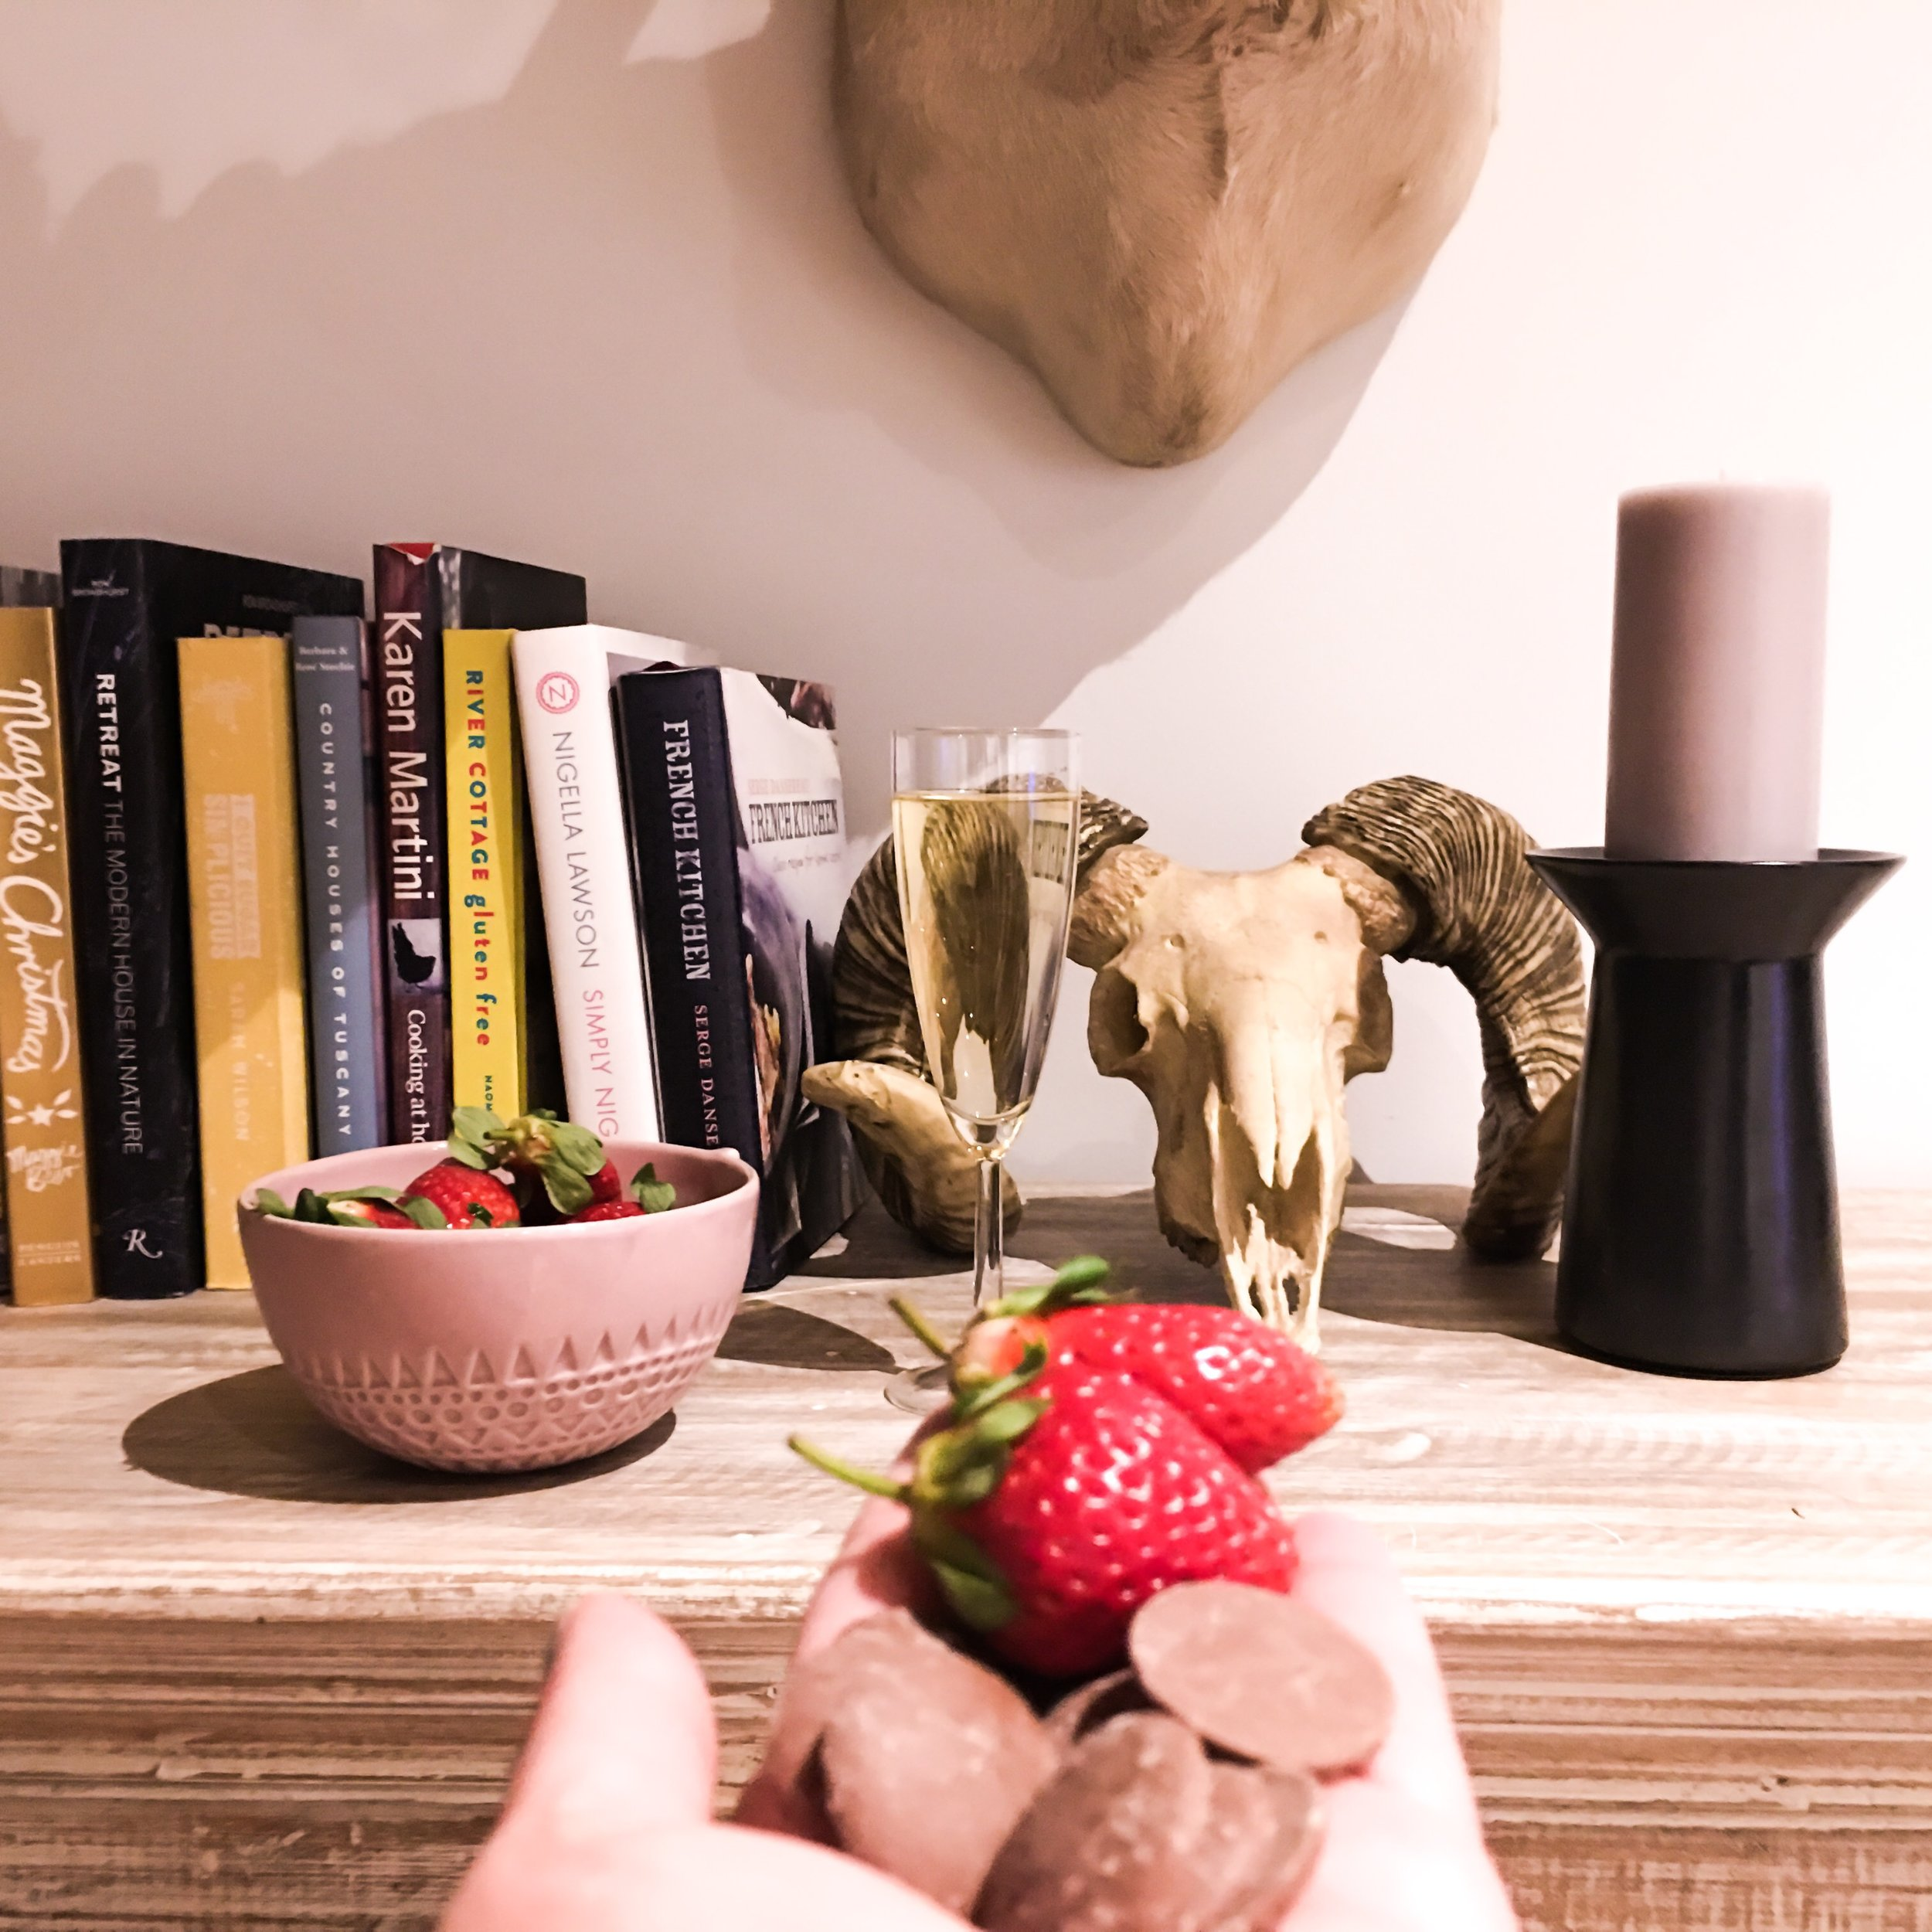 The strawberries, chocolate and champagne which Jo had waiting for us were thoroughly enjoyed whilst exploring and enjoying several books, candles and oh the fireplace!